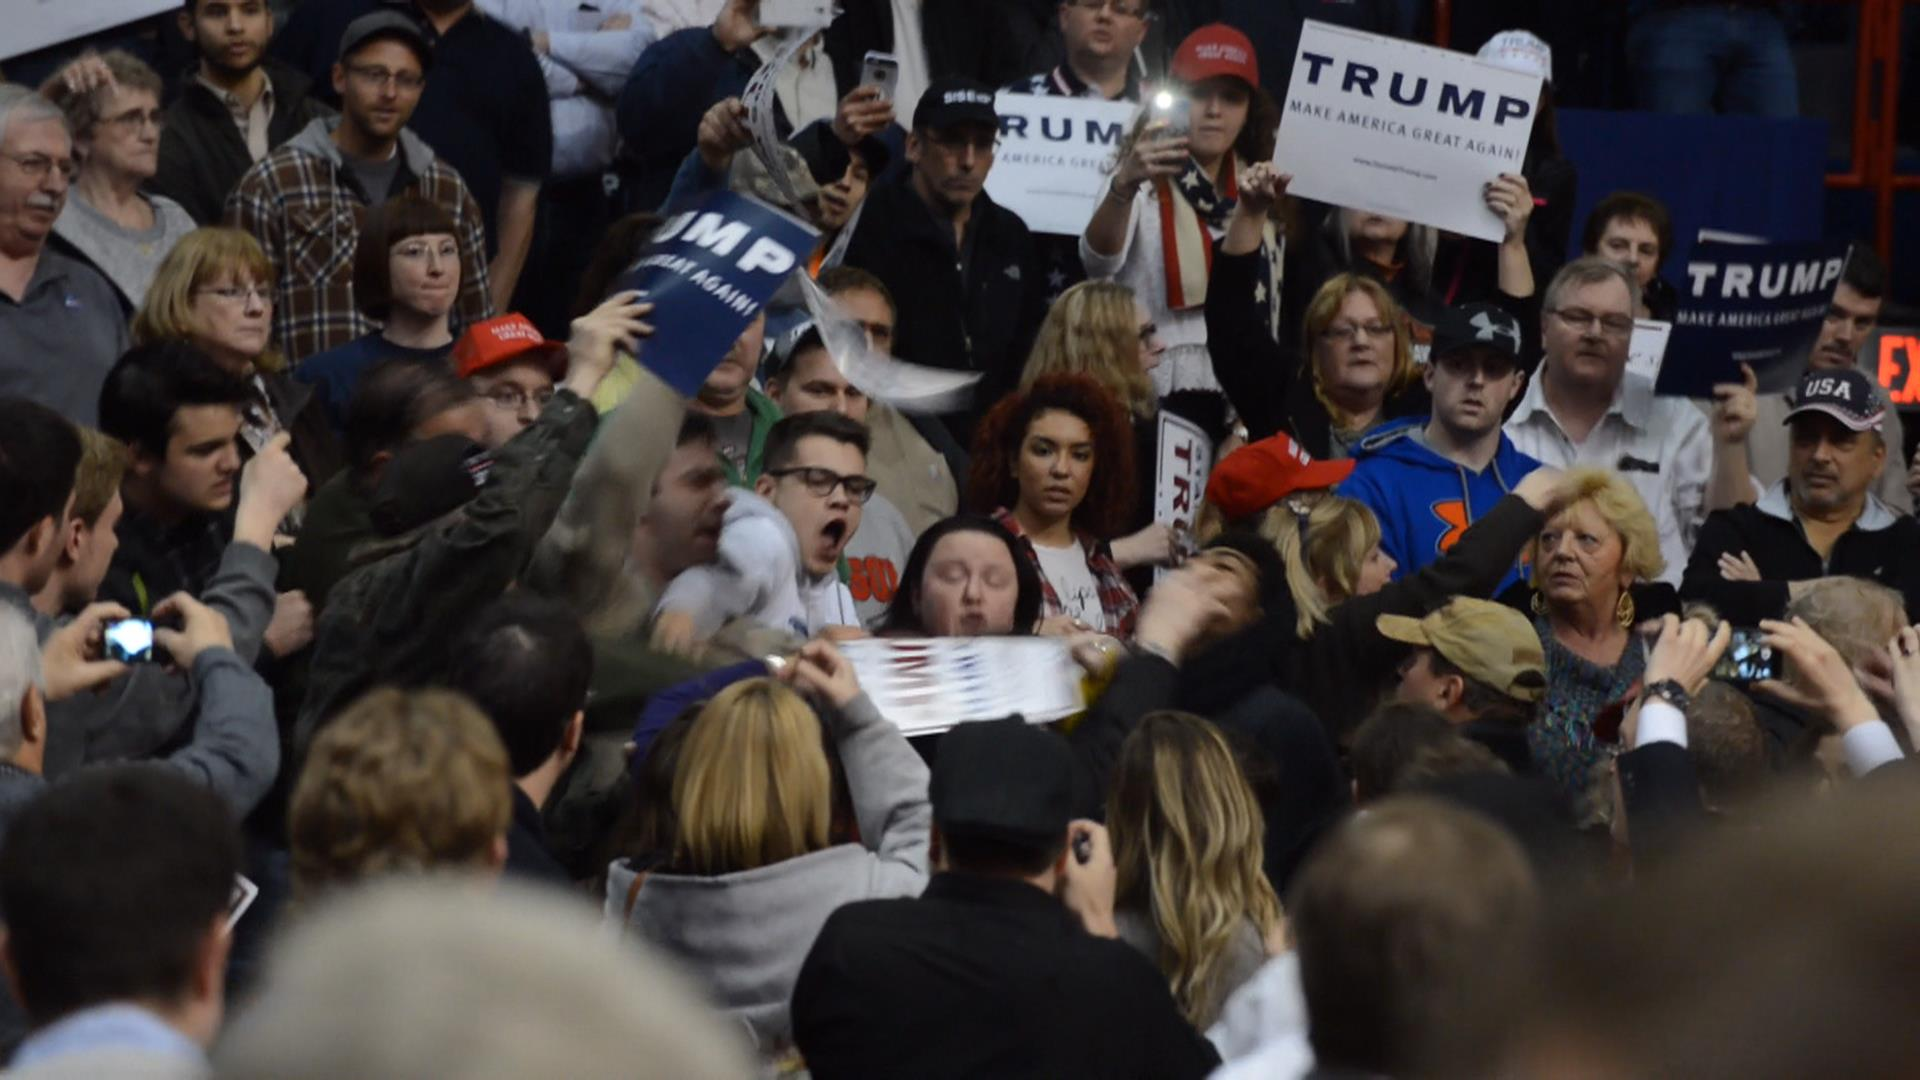 Men Brawl at N.Y. Trump Rally as Candidate Complains of 'Crooked' Nominating Process